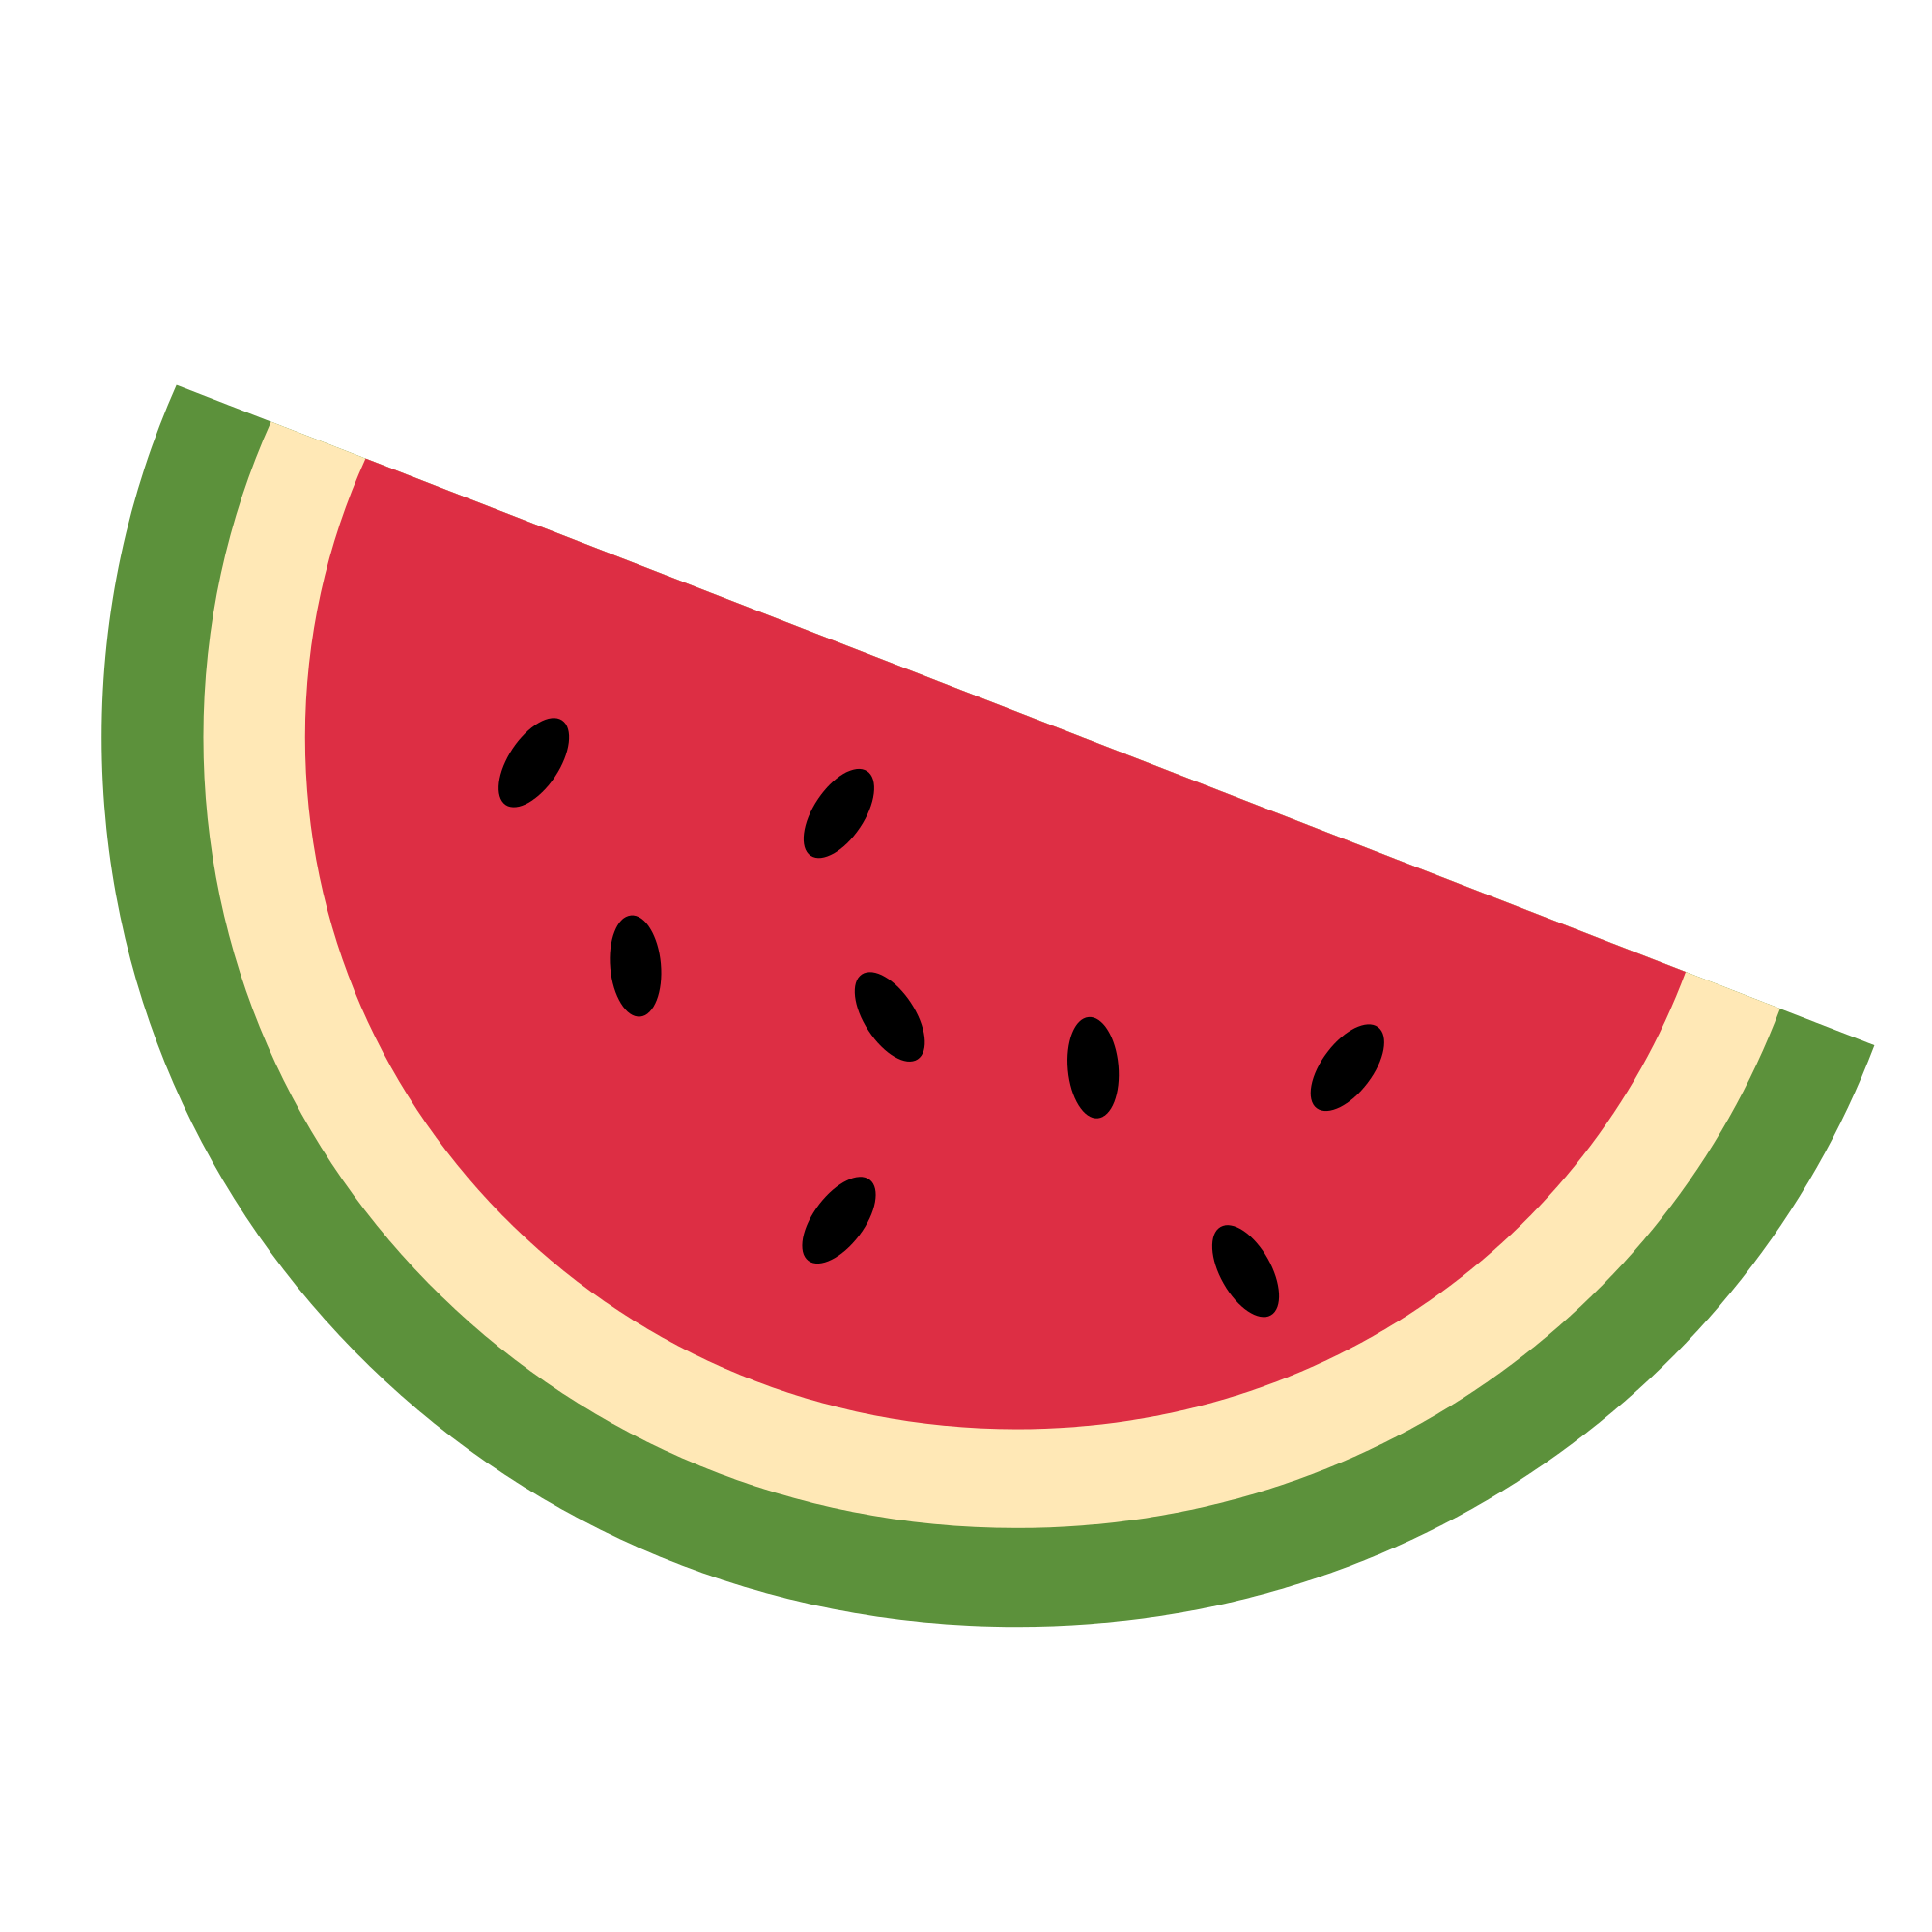 Watermelon svg #6, Download drawings